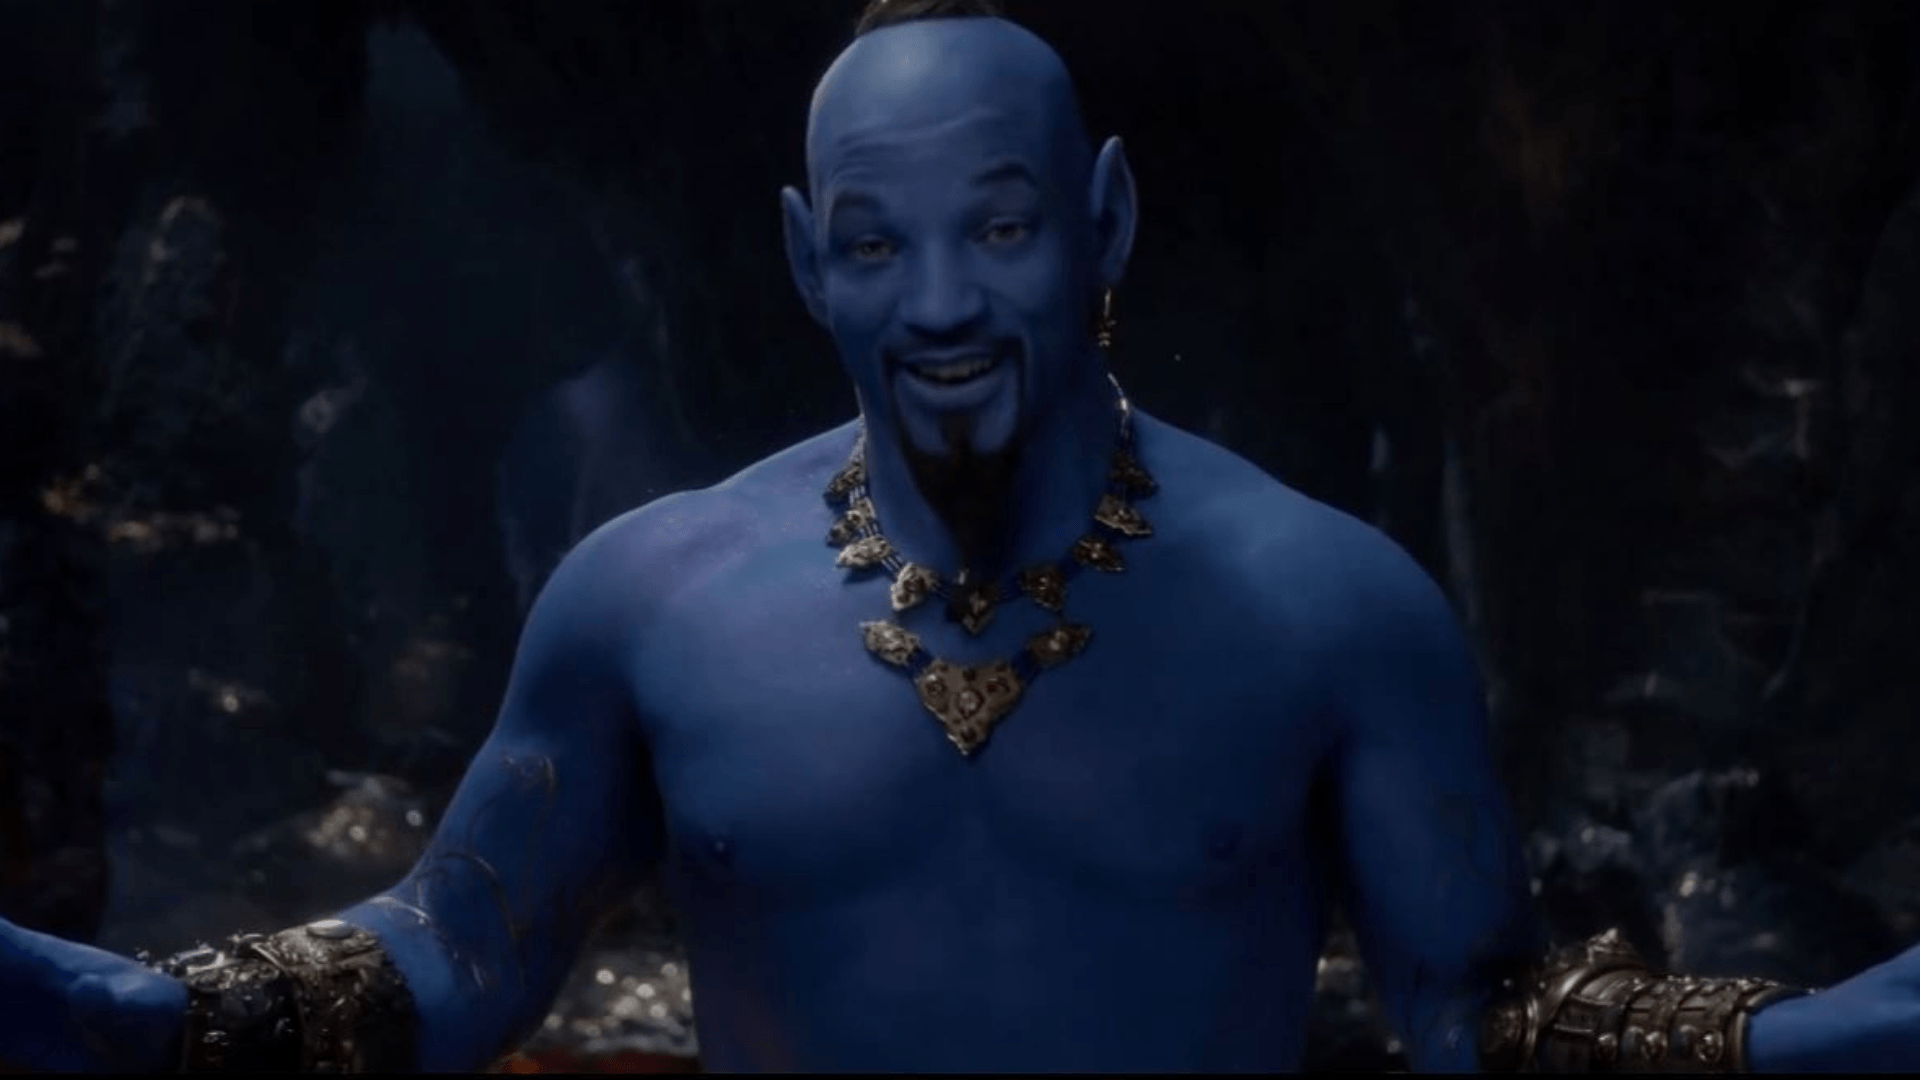 WATCH: 'Aladdin' trailer released during Grammys and, yes, Will